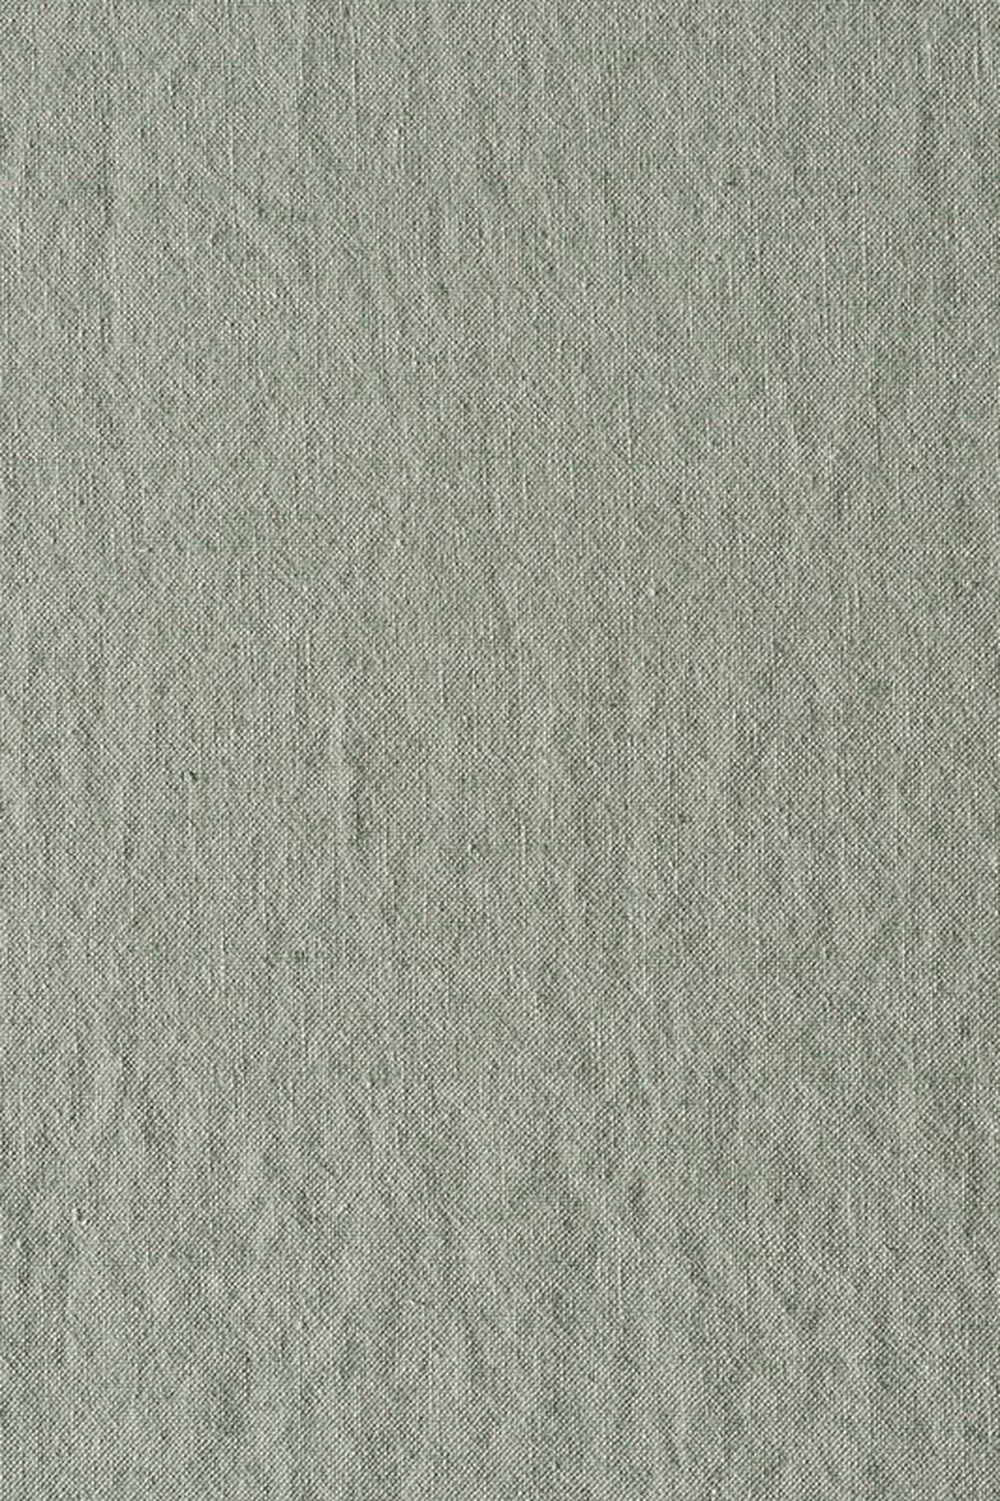 Photo of the fabric Obi Stonewash Sage swatch by Mokum. Use for Curtains, Upholstery Light Duty, Accessory, Top of Bed. Style of Plain